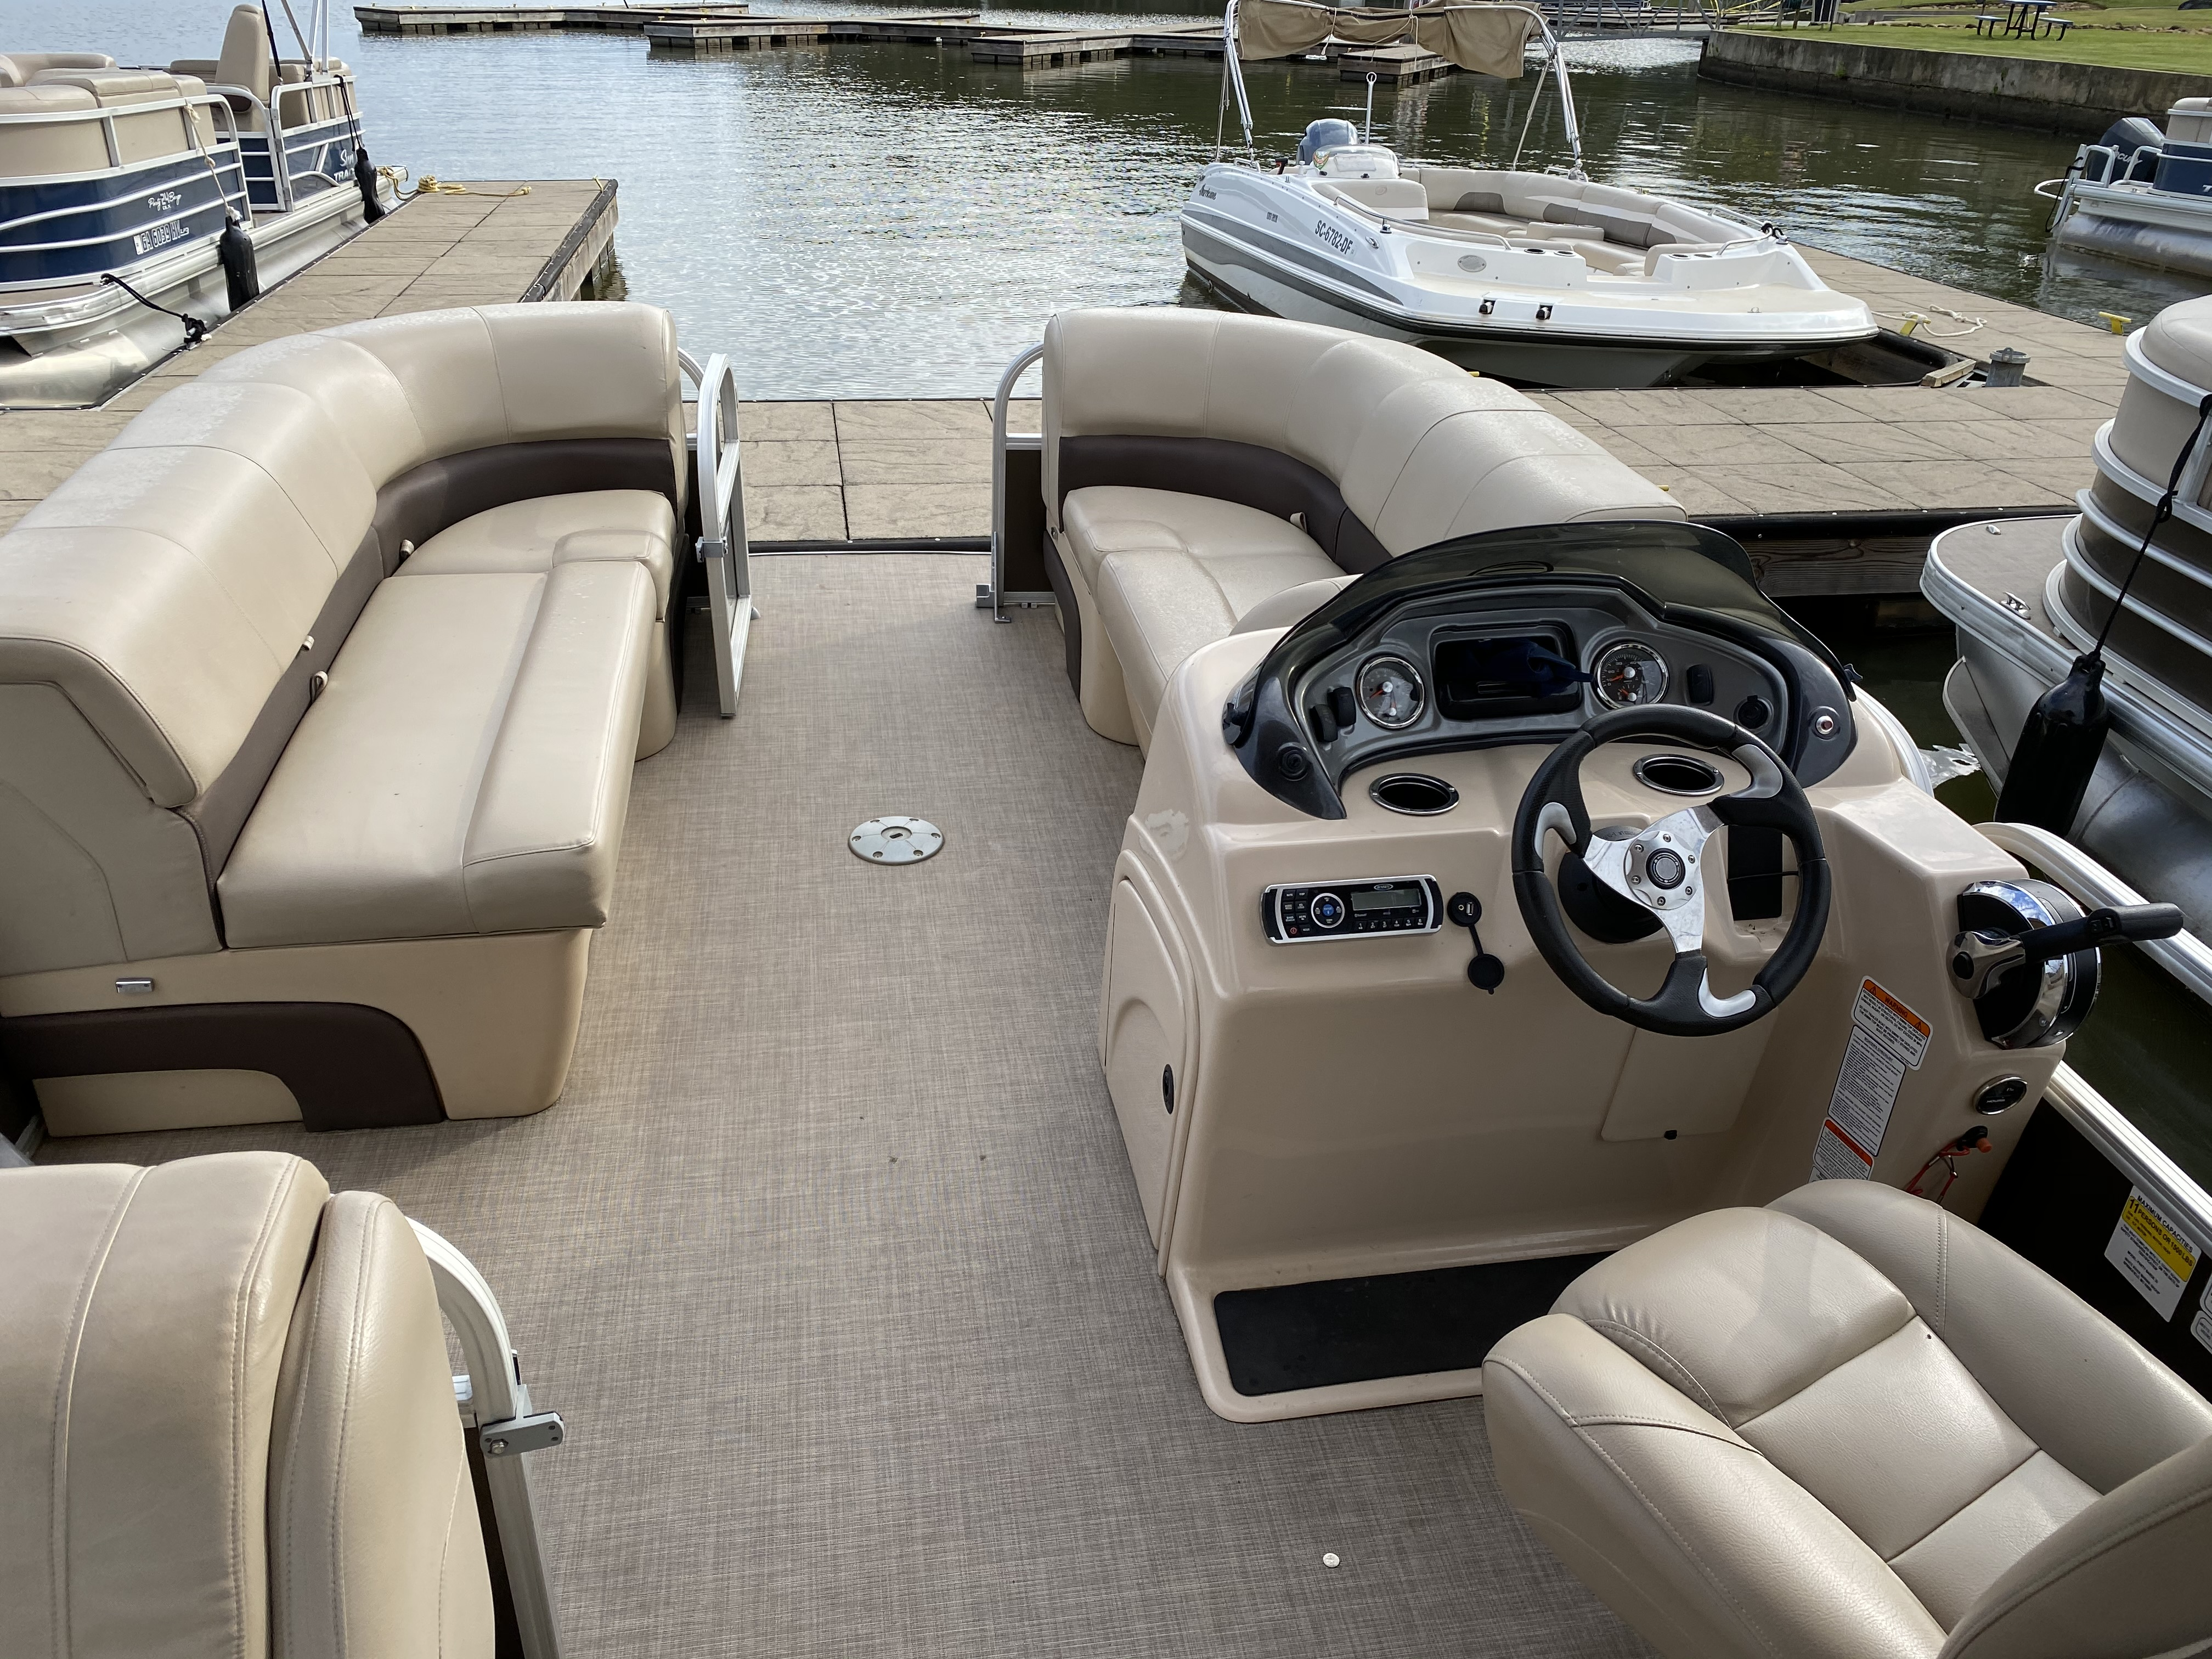 2019 Sun Tracker boat for sale, model of the boat is PARTY BARGE 22 w/ Mercury 115 ELPT 4S & Image # 20 of 26